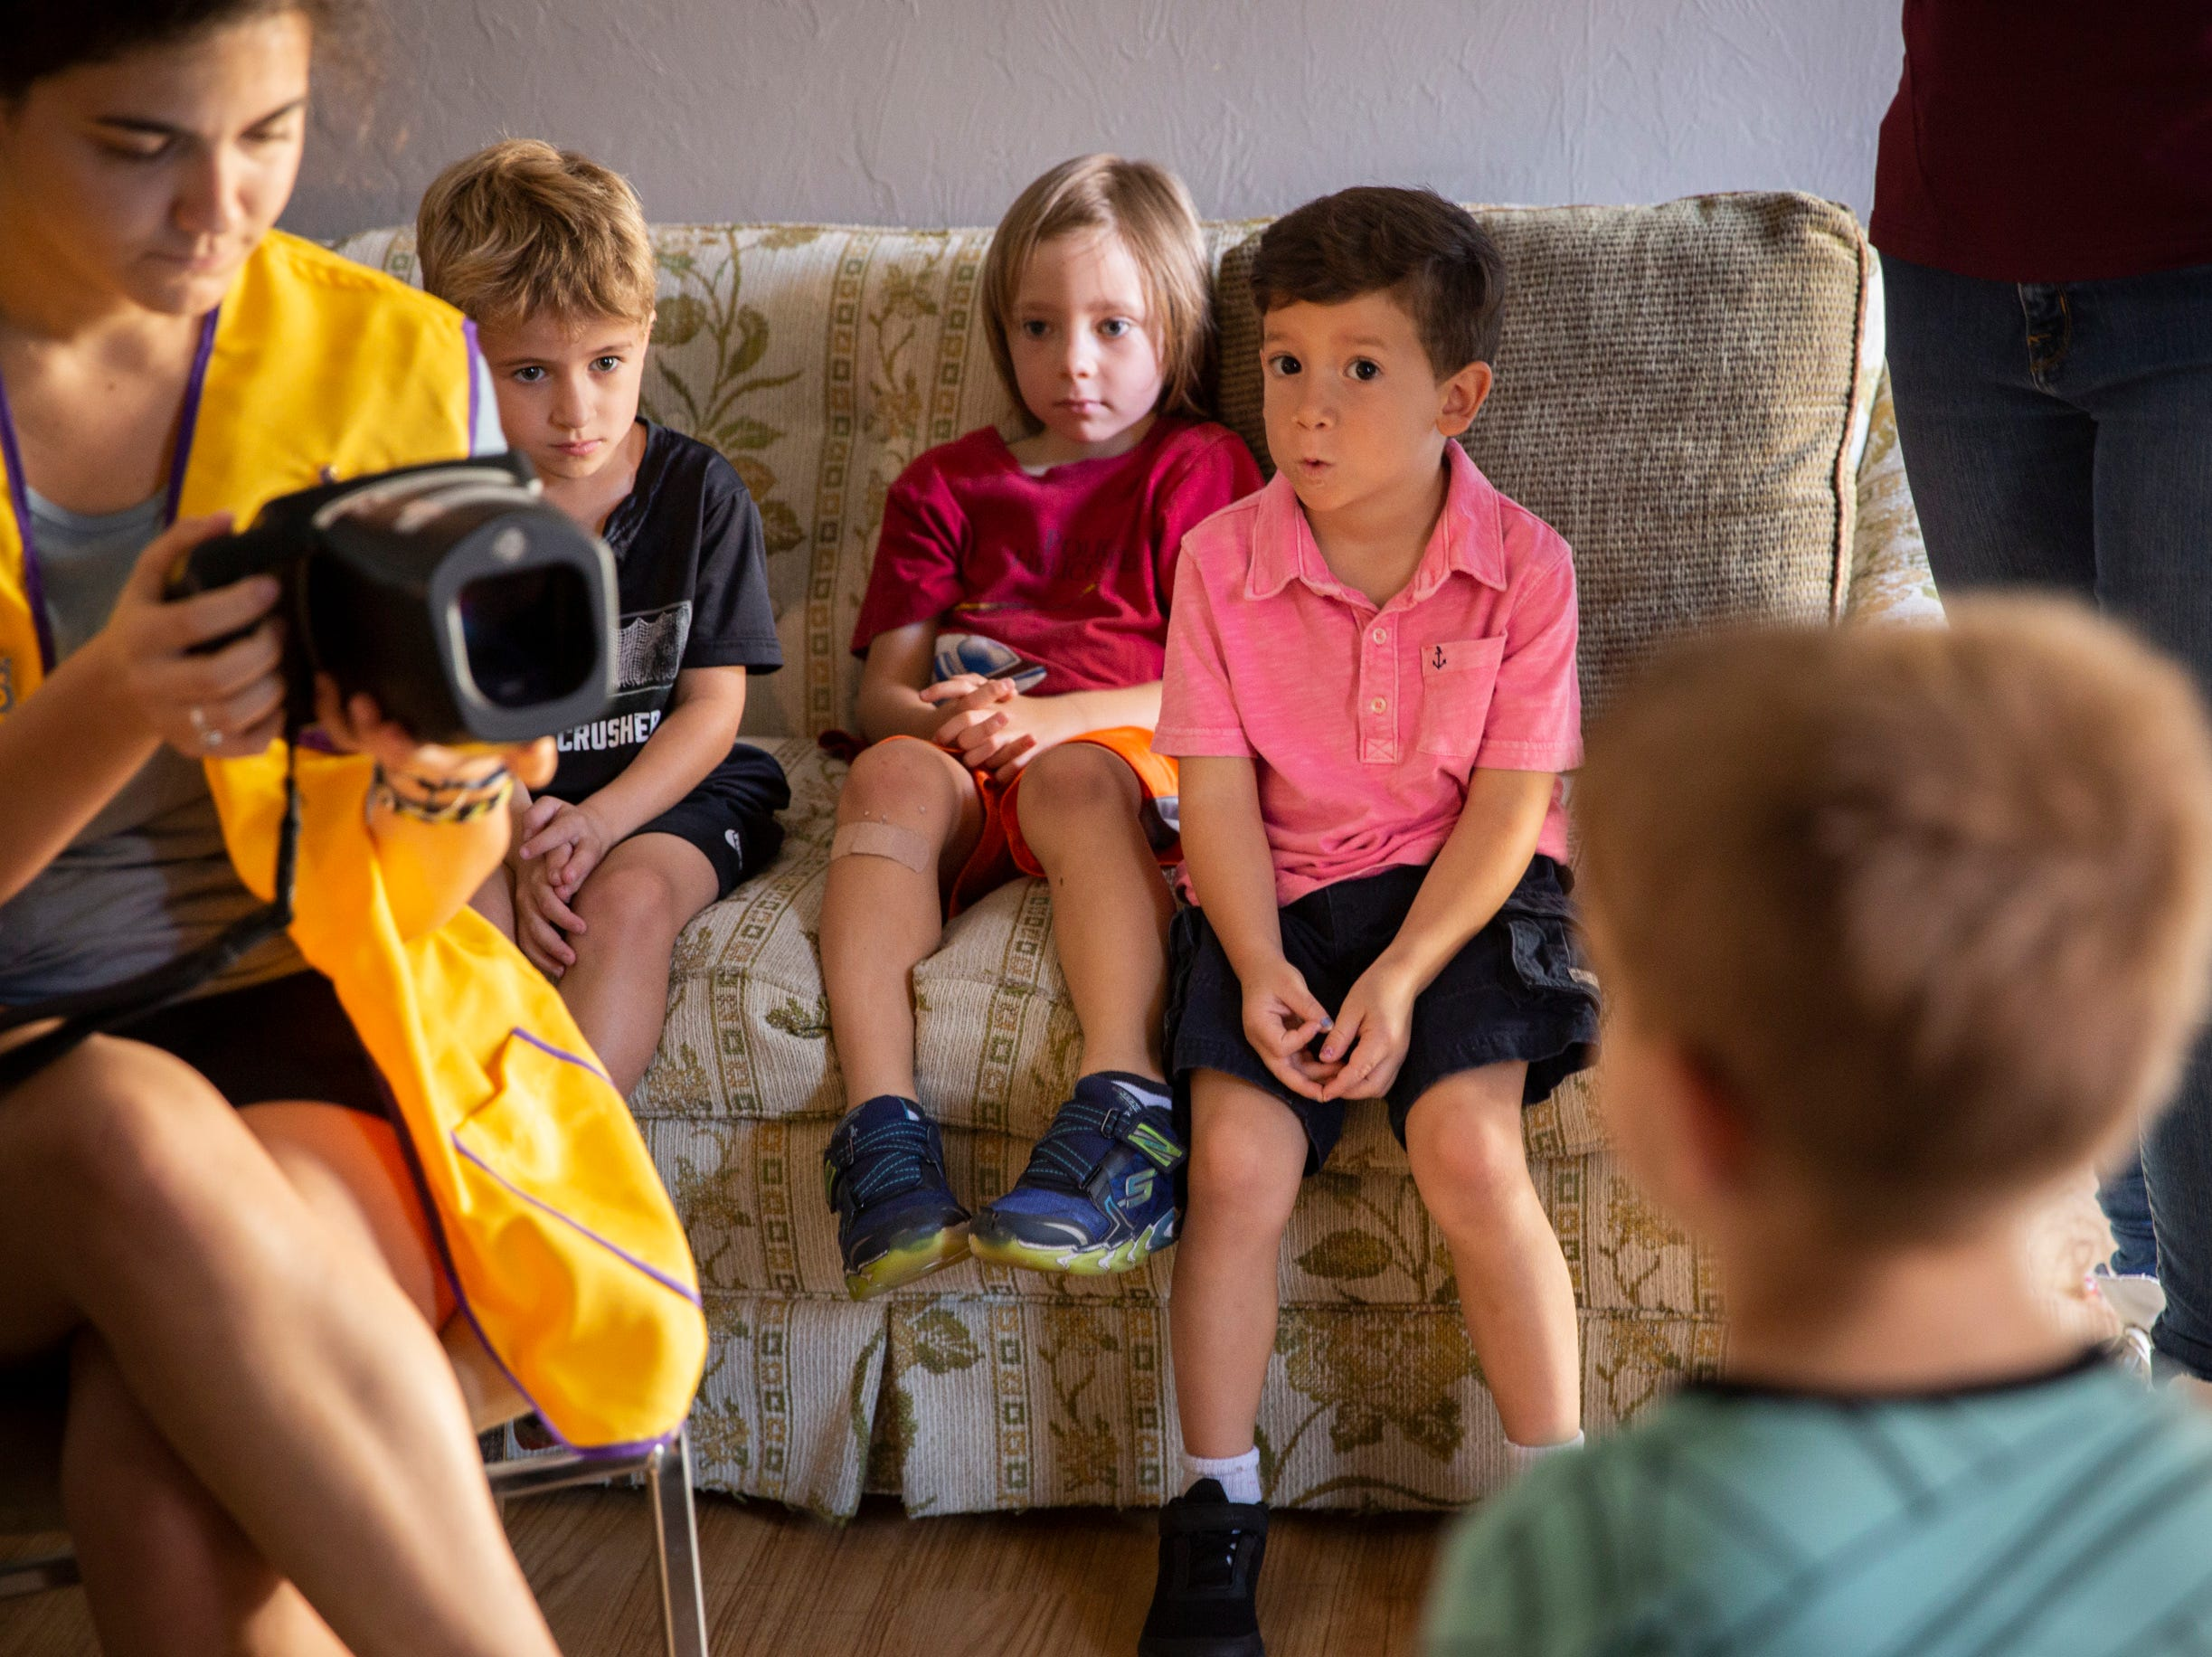 Michelle De Angelis tests Walker Barberio's eyes using a spot vision screener while, from left to right, Liam Willig, 5, Colin Ryan, 4, and Maxwell Florian, 5, watch at Grace Lutheran Preschool in Naples on Friday, April 12, 2019.